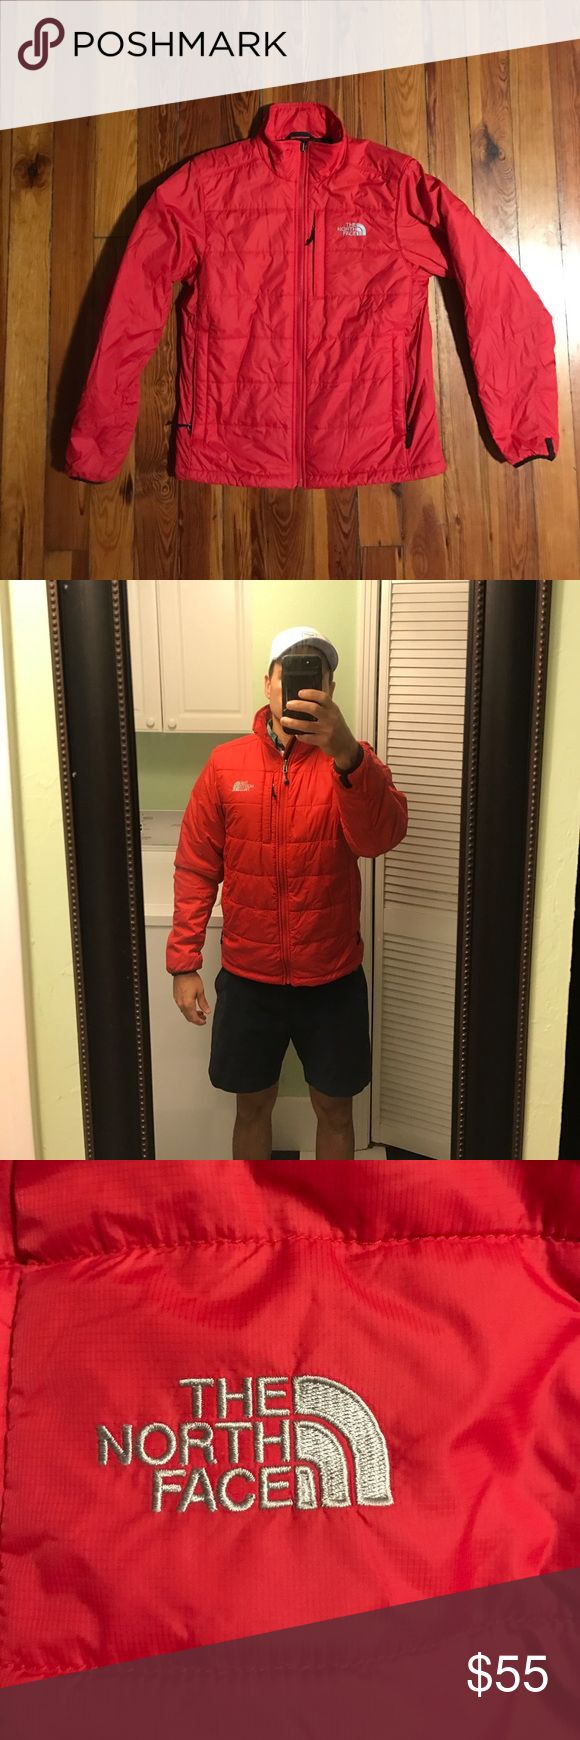 North Face Down Jacket Super comfy and super warm down jacket from the North Face outlet. It has two pockets on each side of the jacket near the waist, and a chest pocket near the top logo.  This jacket  was rarely worn, because I live in Florida, but will keep you very warm in cold weather. The North Face Jackets & Coats Performance Jackets